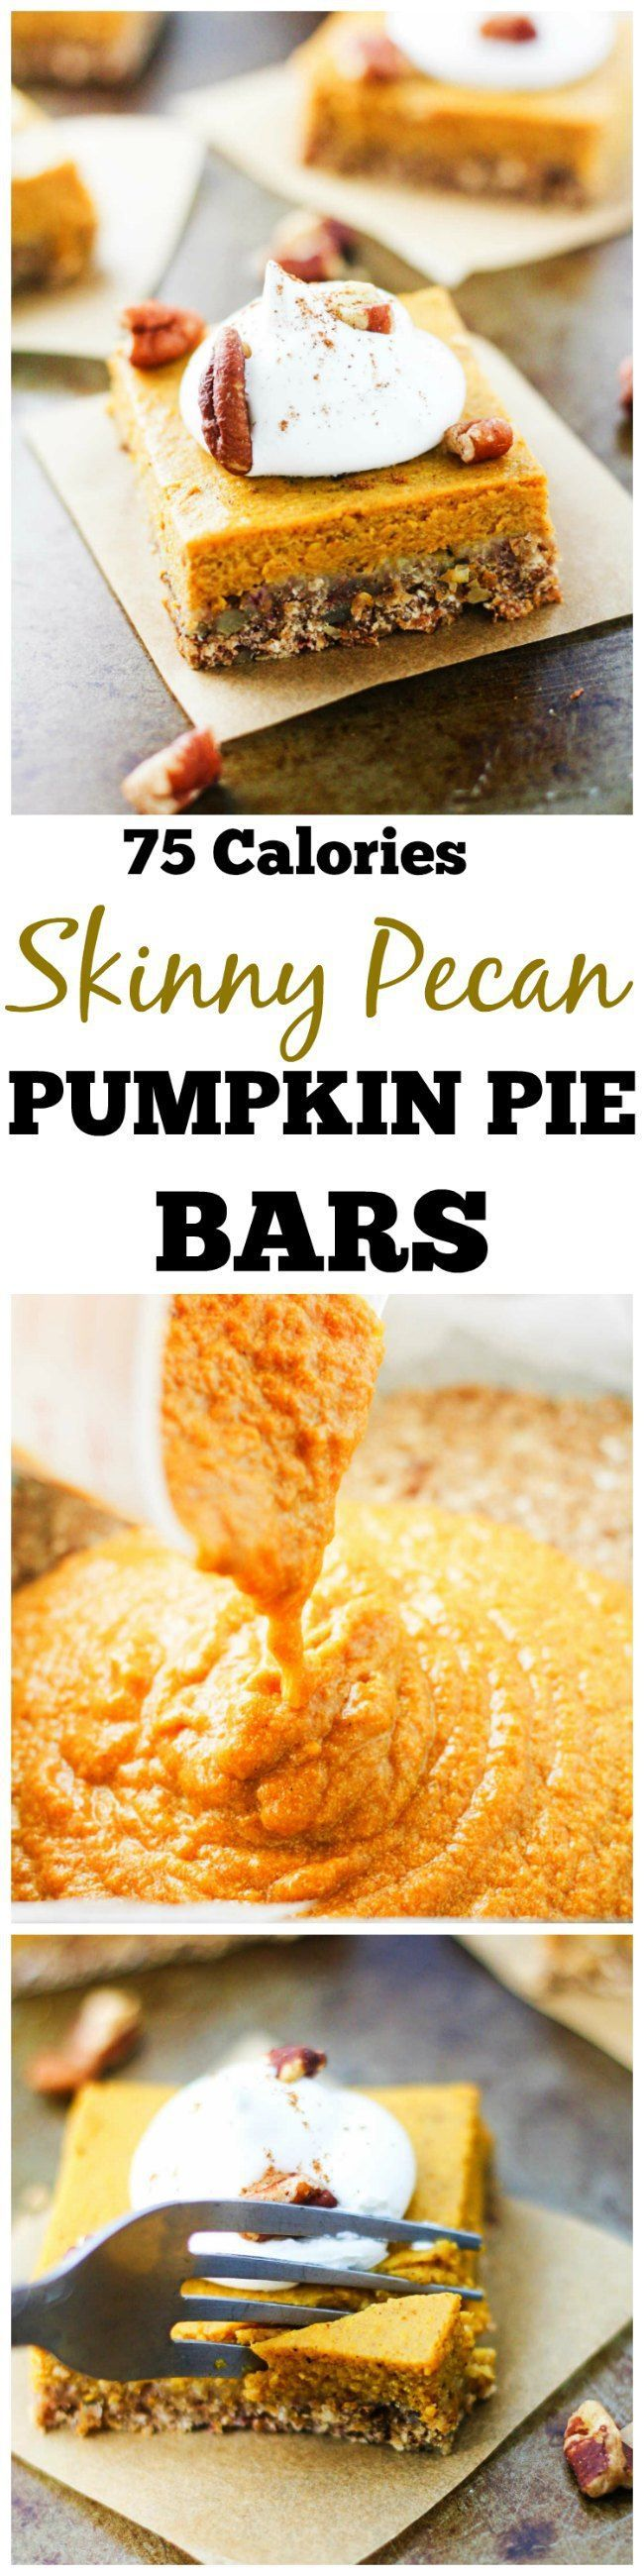 Skinny Pecan Pumpkin Pie Bars - Delicious pumpkin bars are low calorie. A guilt free fall dessert!   It's Cheat Day Everyday